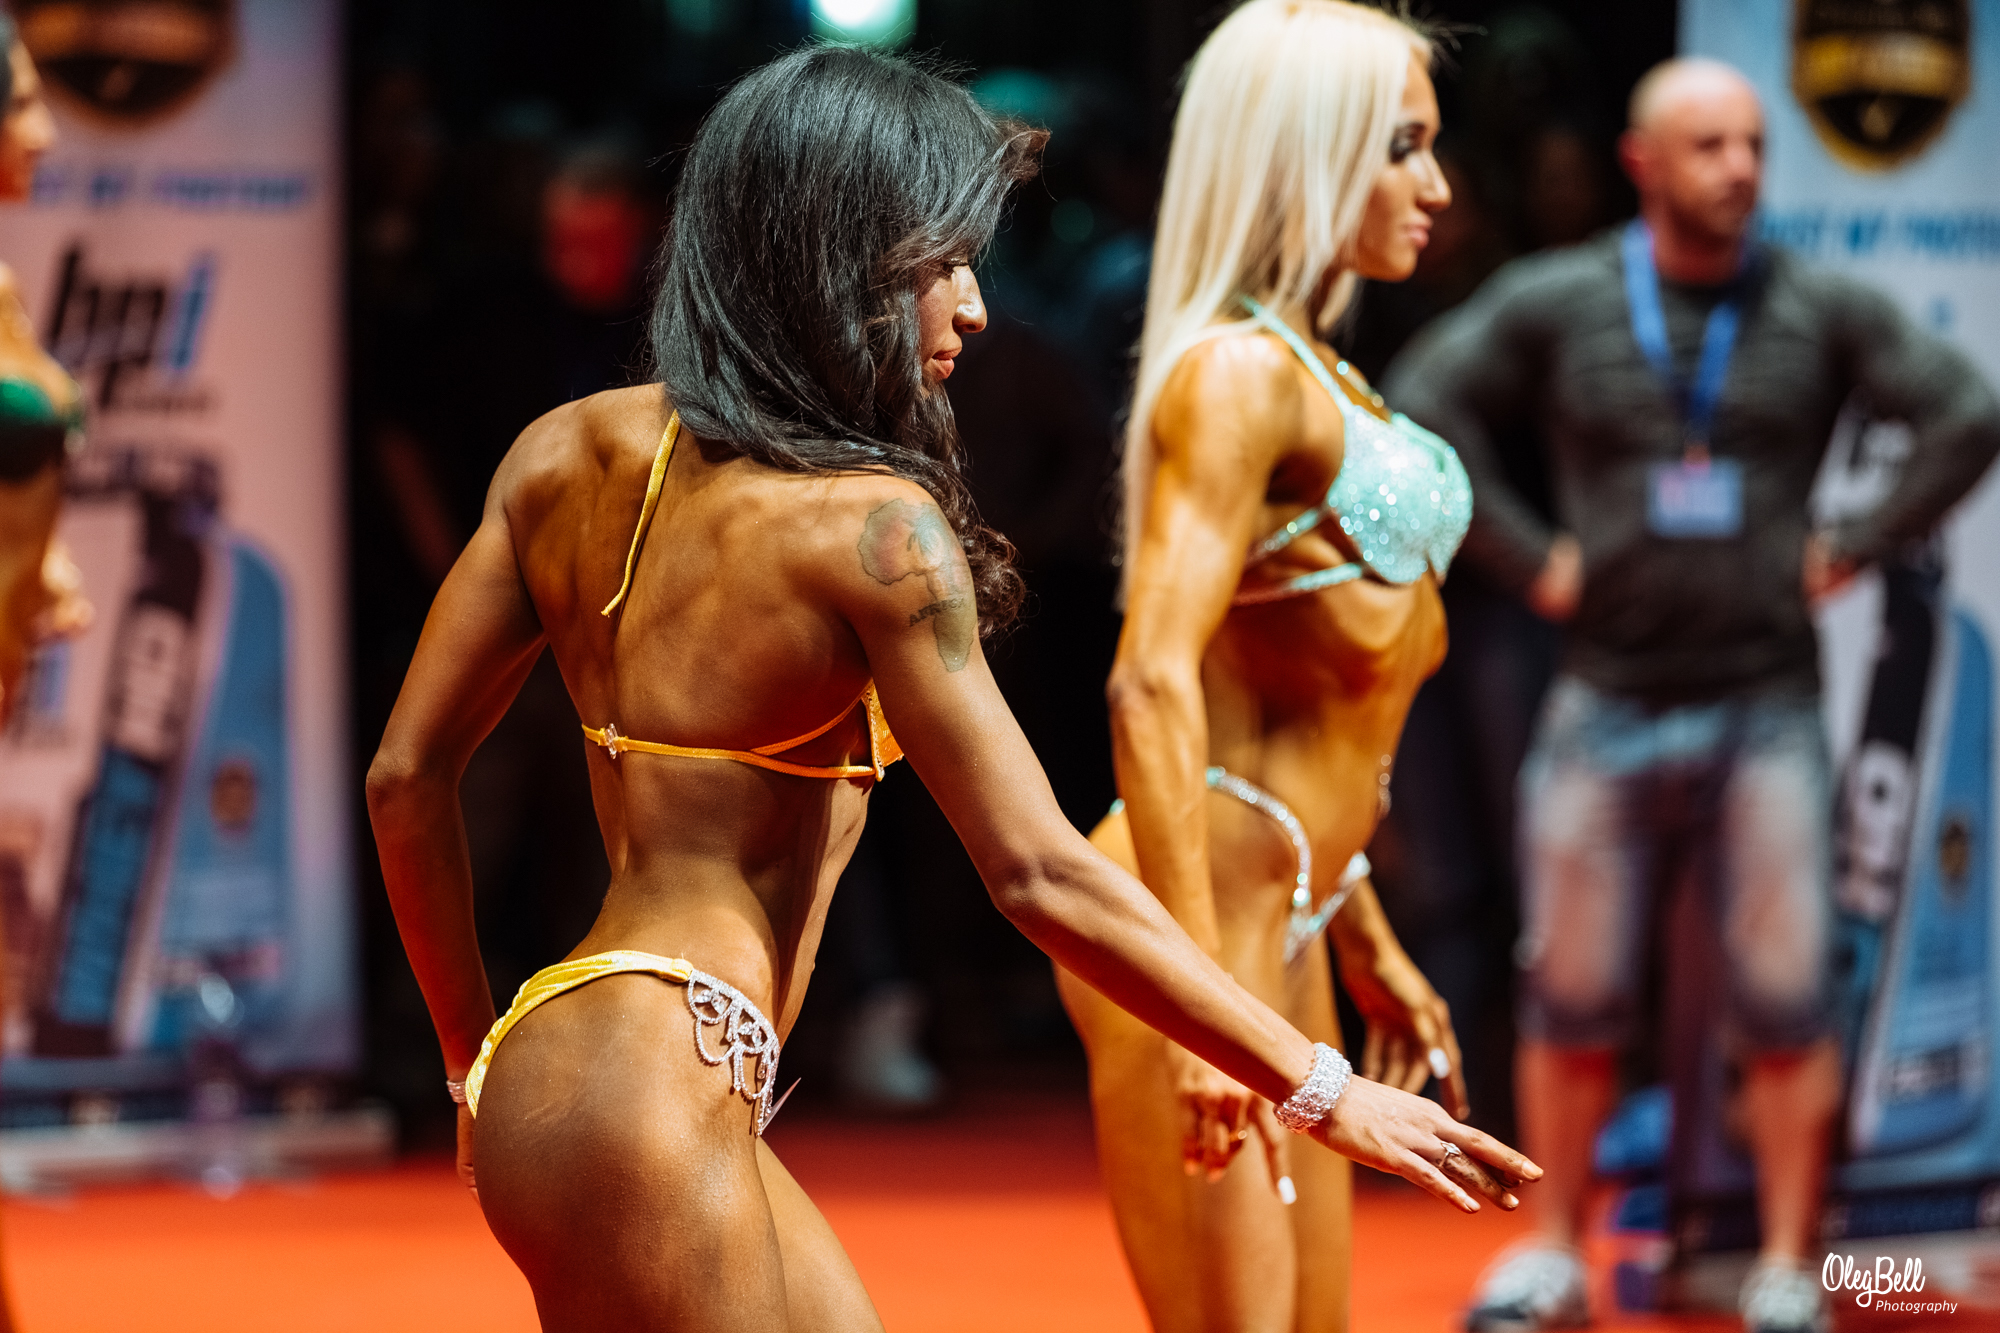 NICOLE_BODYBUILDING_COMPETITIONS_0444.jpg